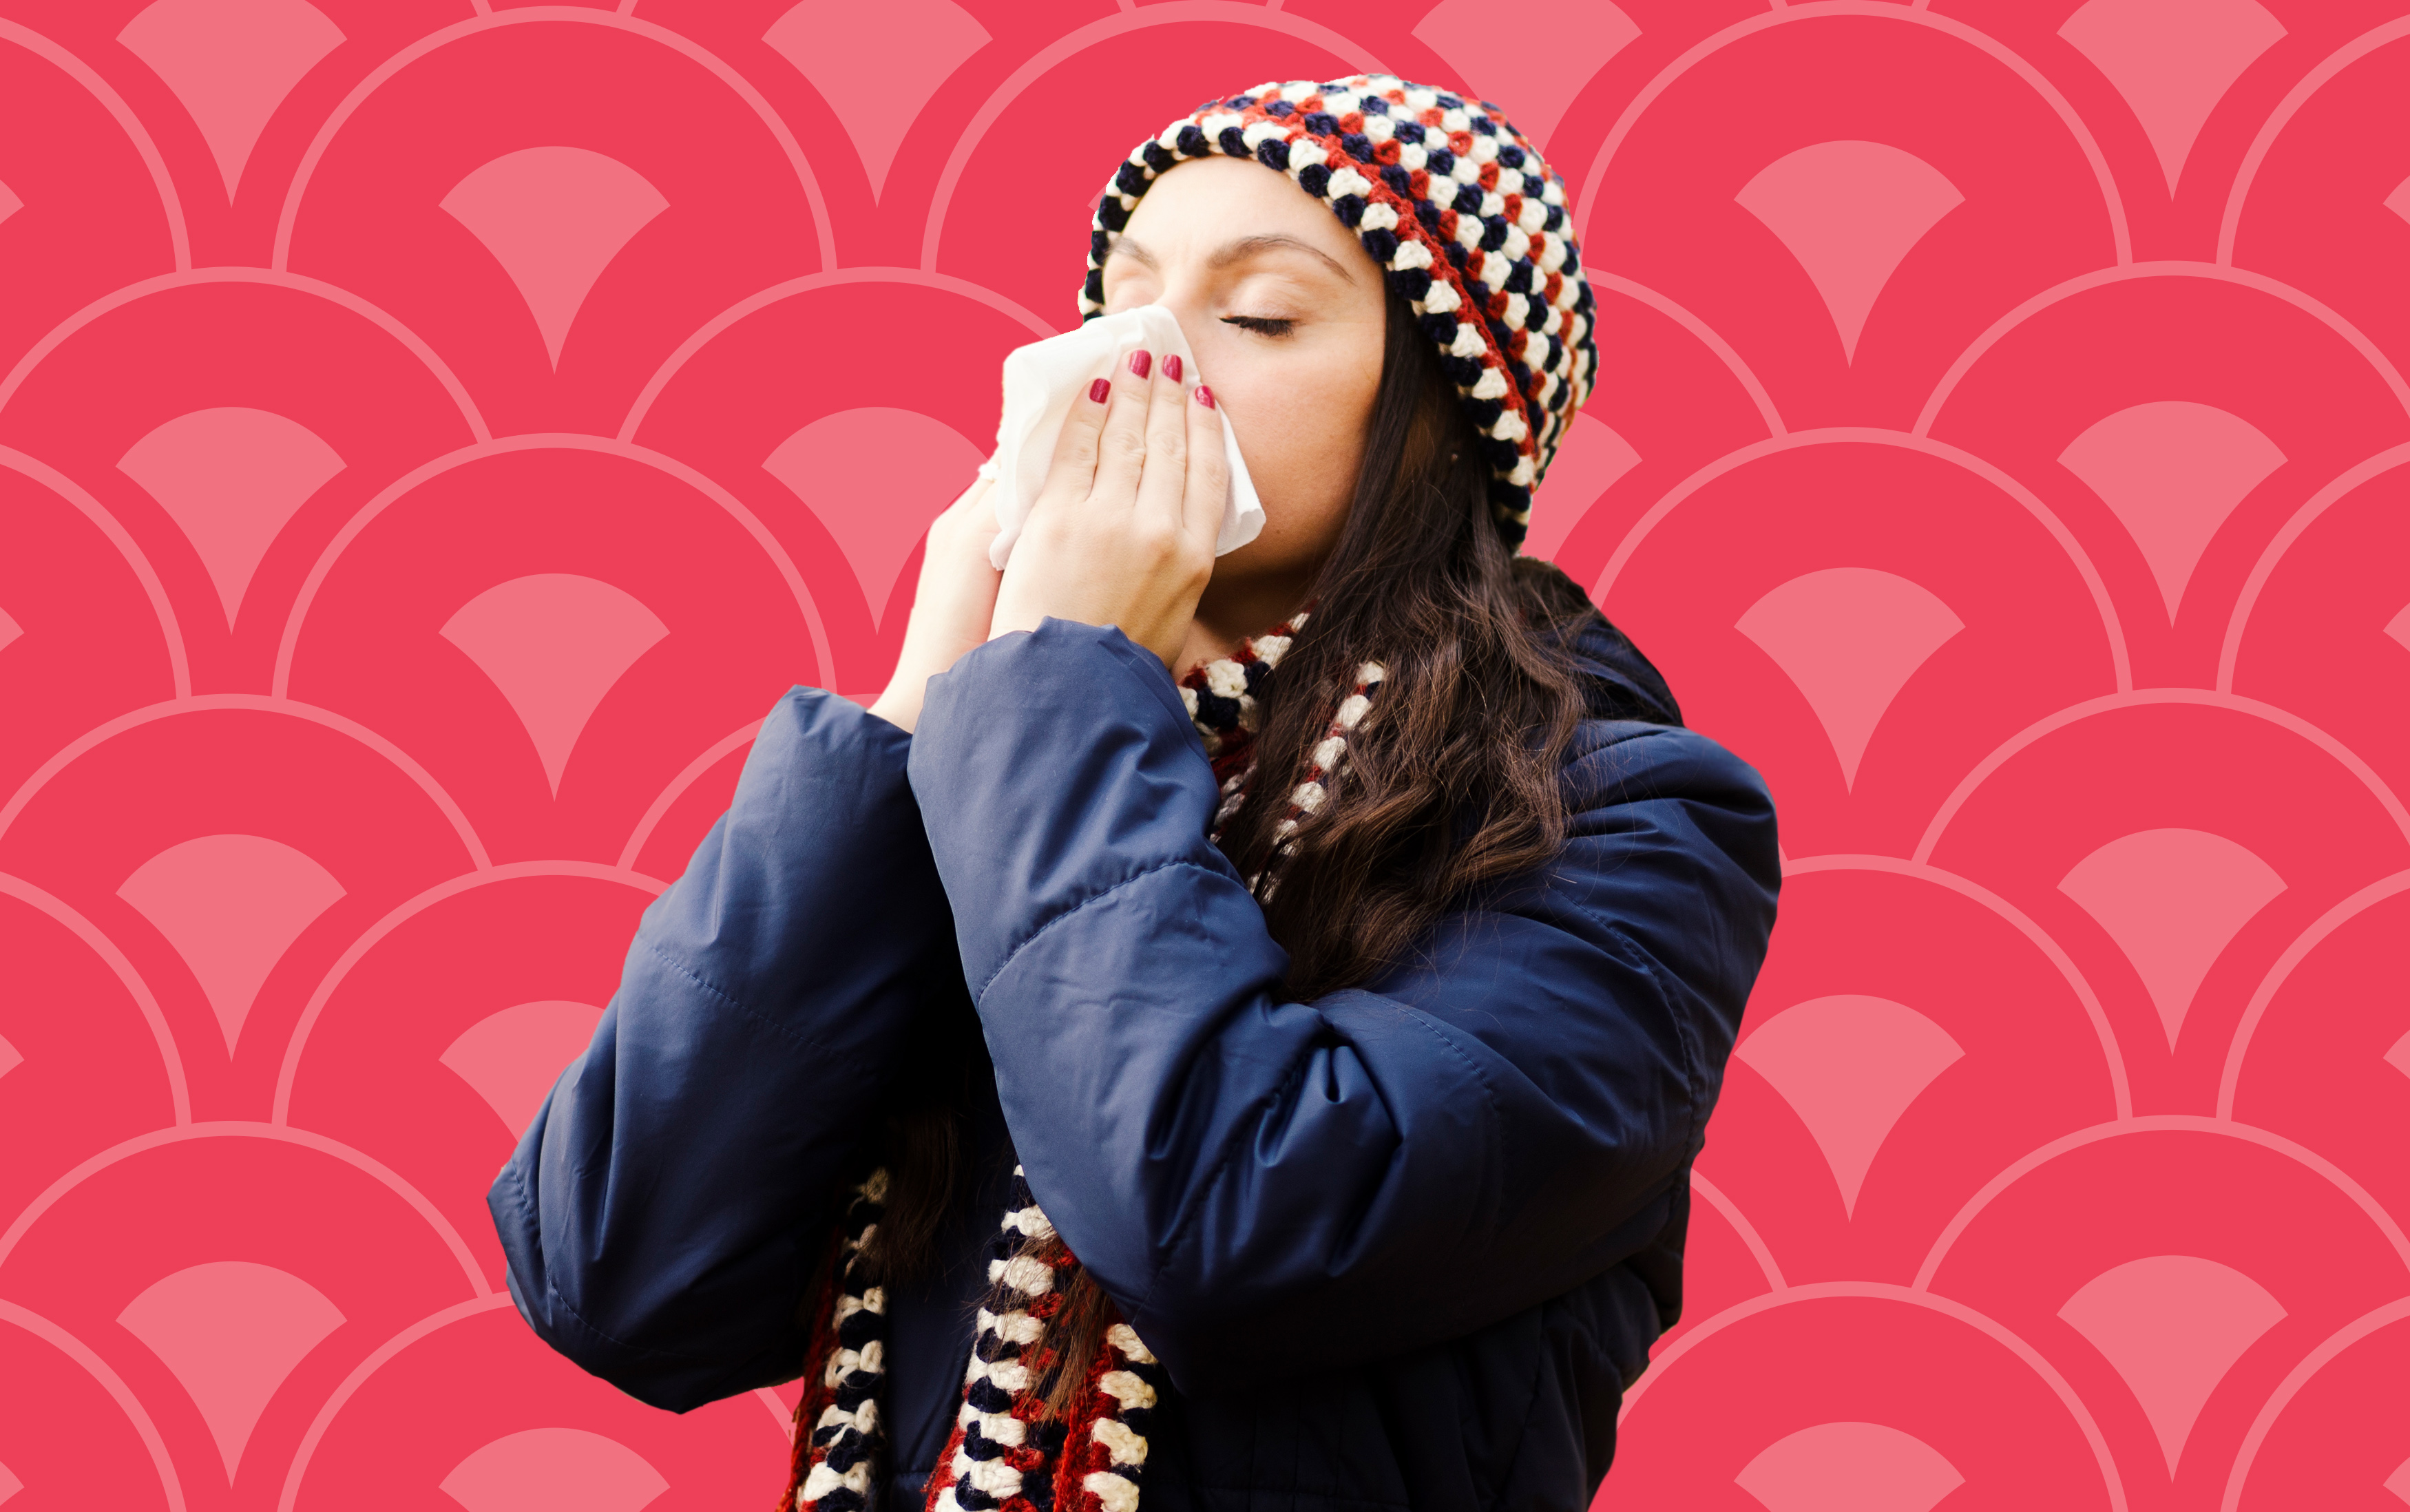 woman wearing navy coat sneezing into tissue against red background